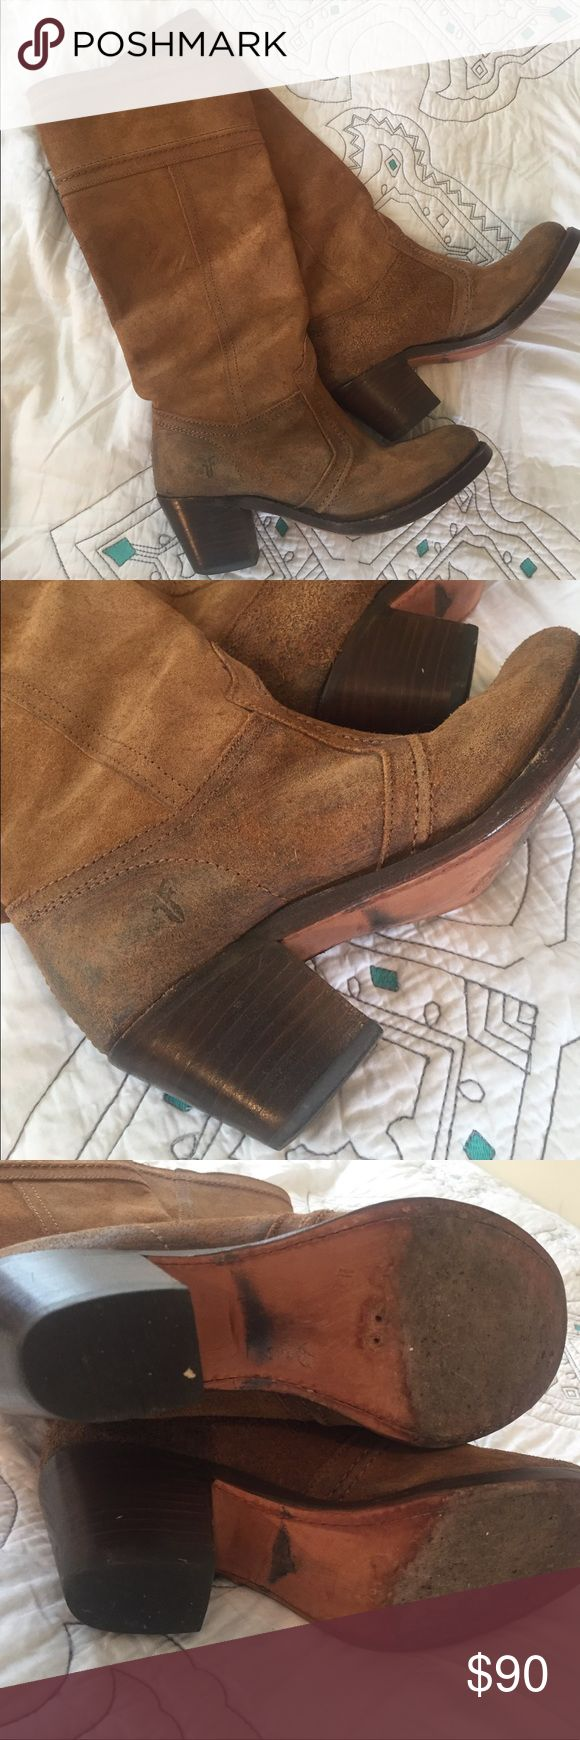 "Frye riding boots 🐴 Frye sueded riding boots. Gently worn, still in excellent condition. There is some blue dye that has rubbed off on the inside of the boot from being worn with jeans. These have a 13"" shaft height and a 2.5"" heel. Great transition boots. Frye Shoes Heeled Boots"